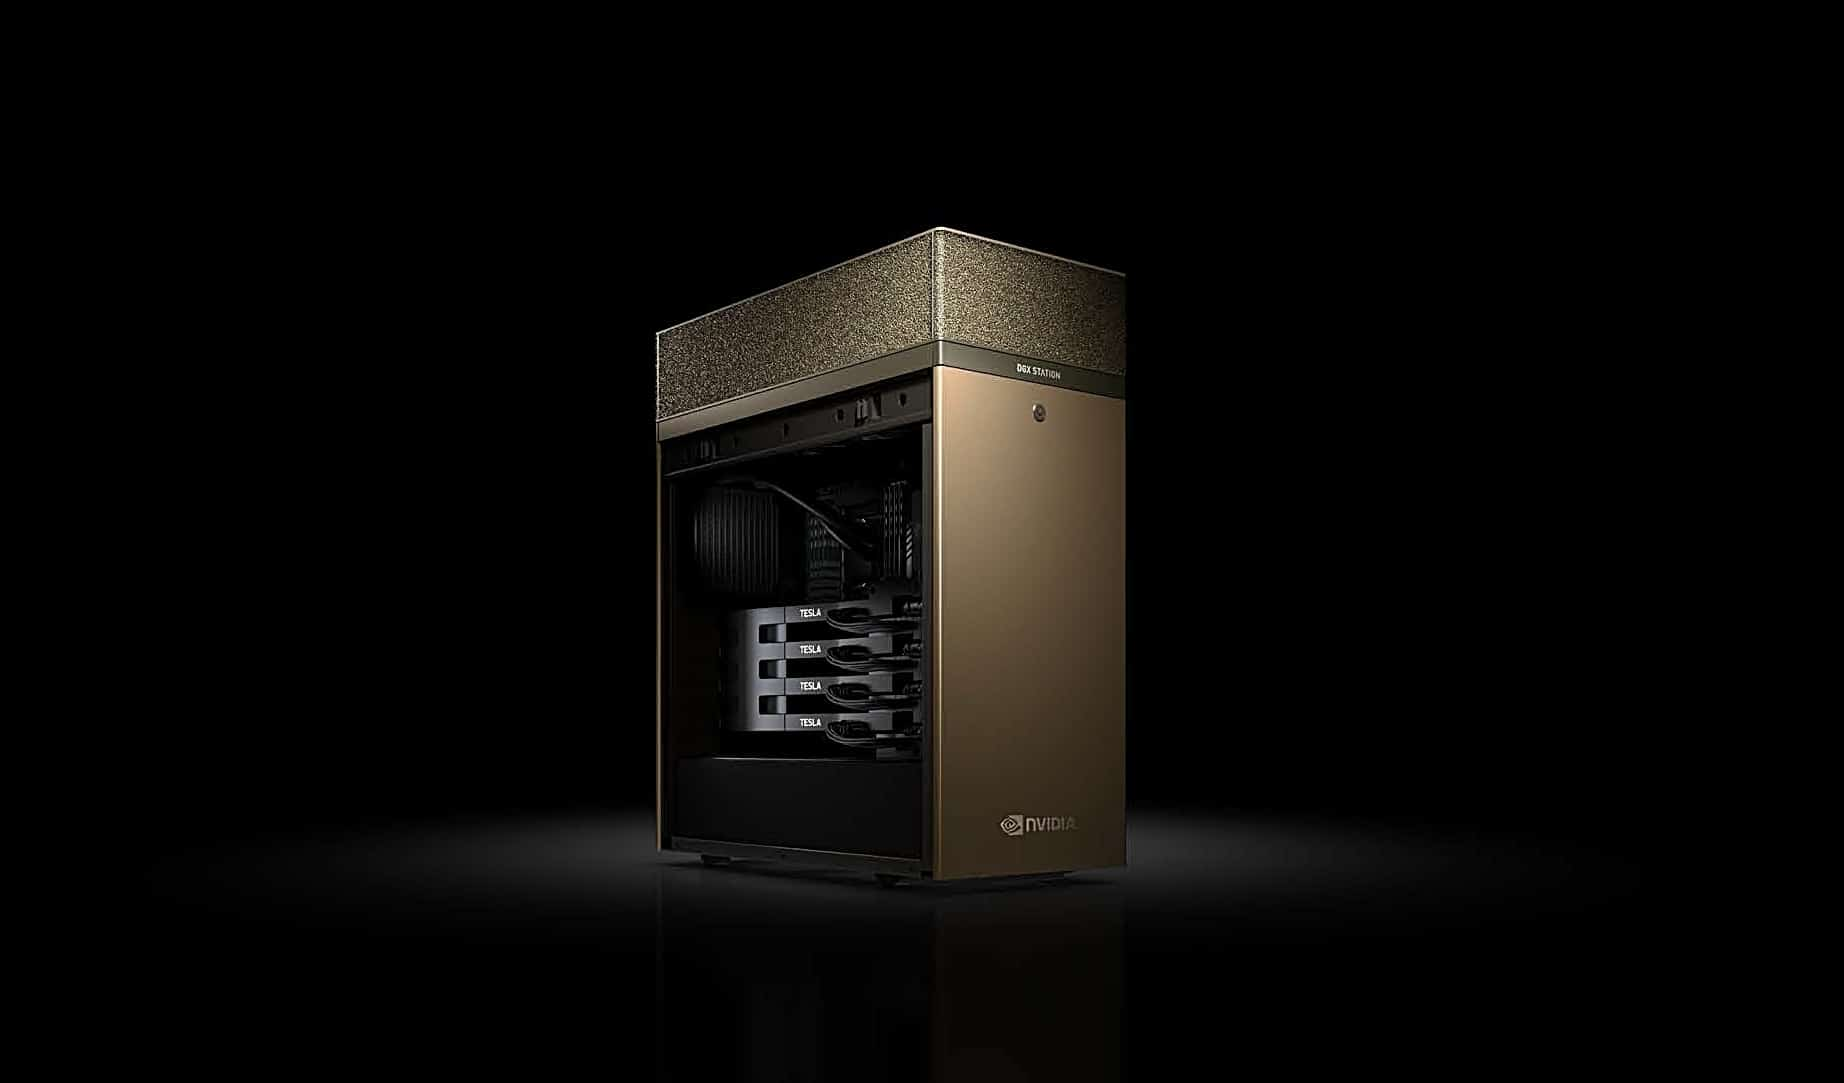 NVIDIA DGX Station Is A Personal Supercomputer That Will Cost You 69000 USD